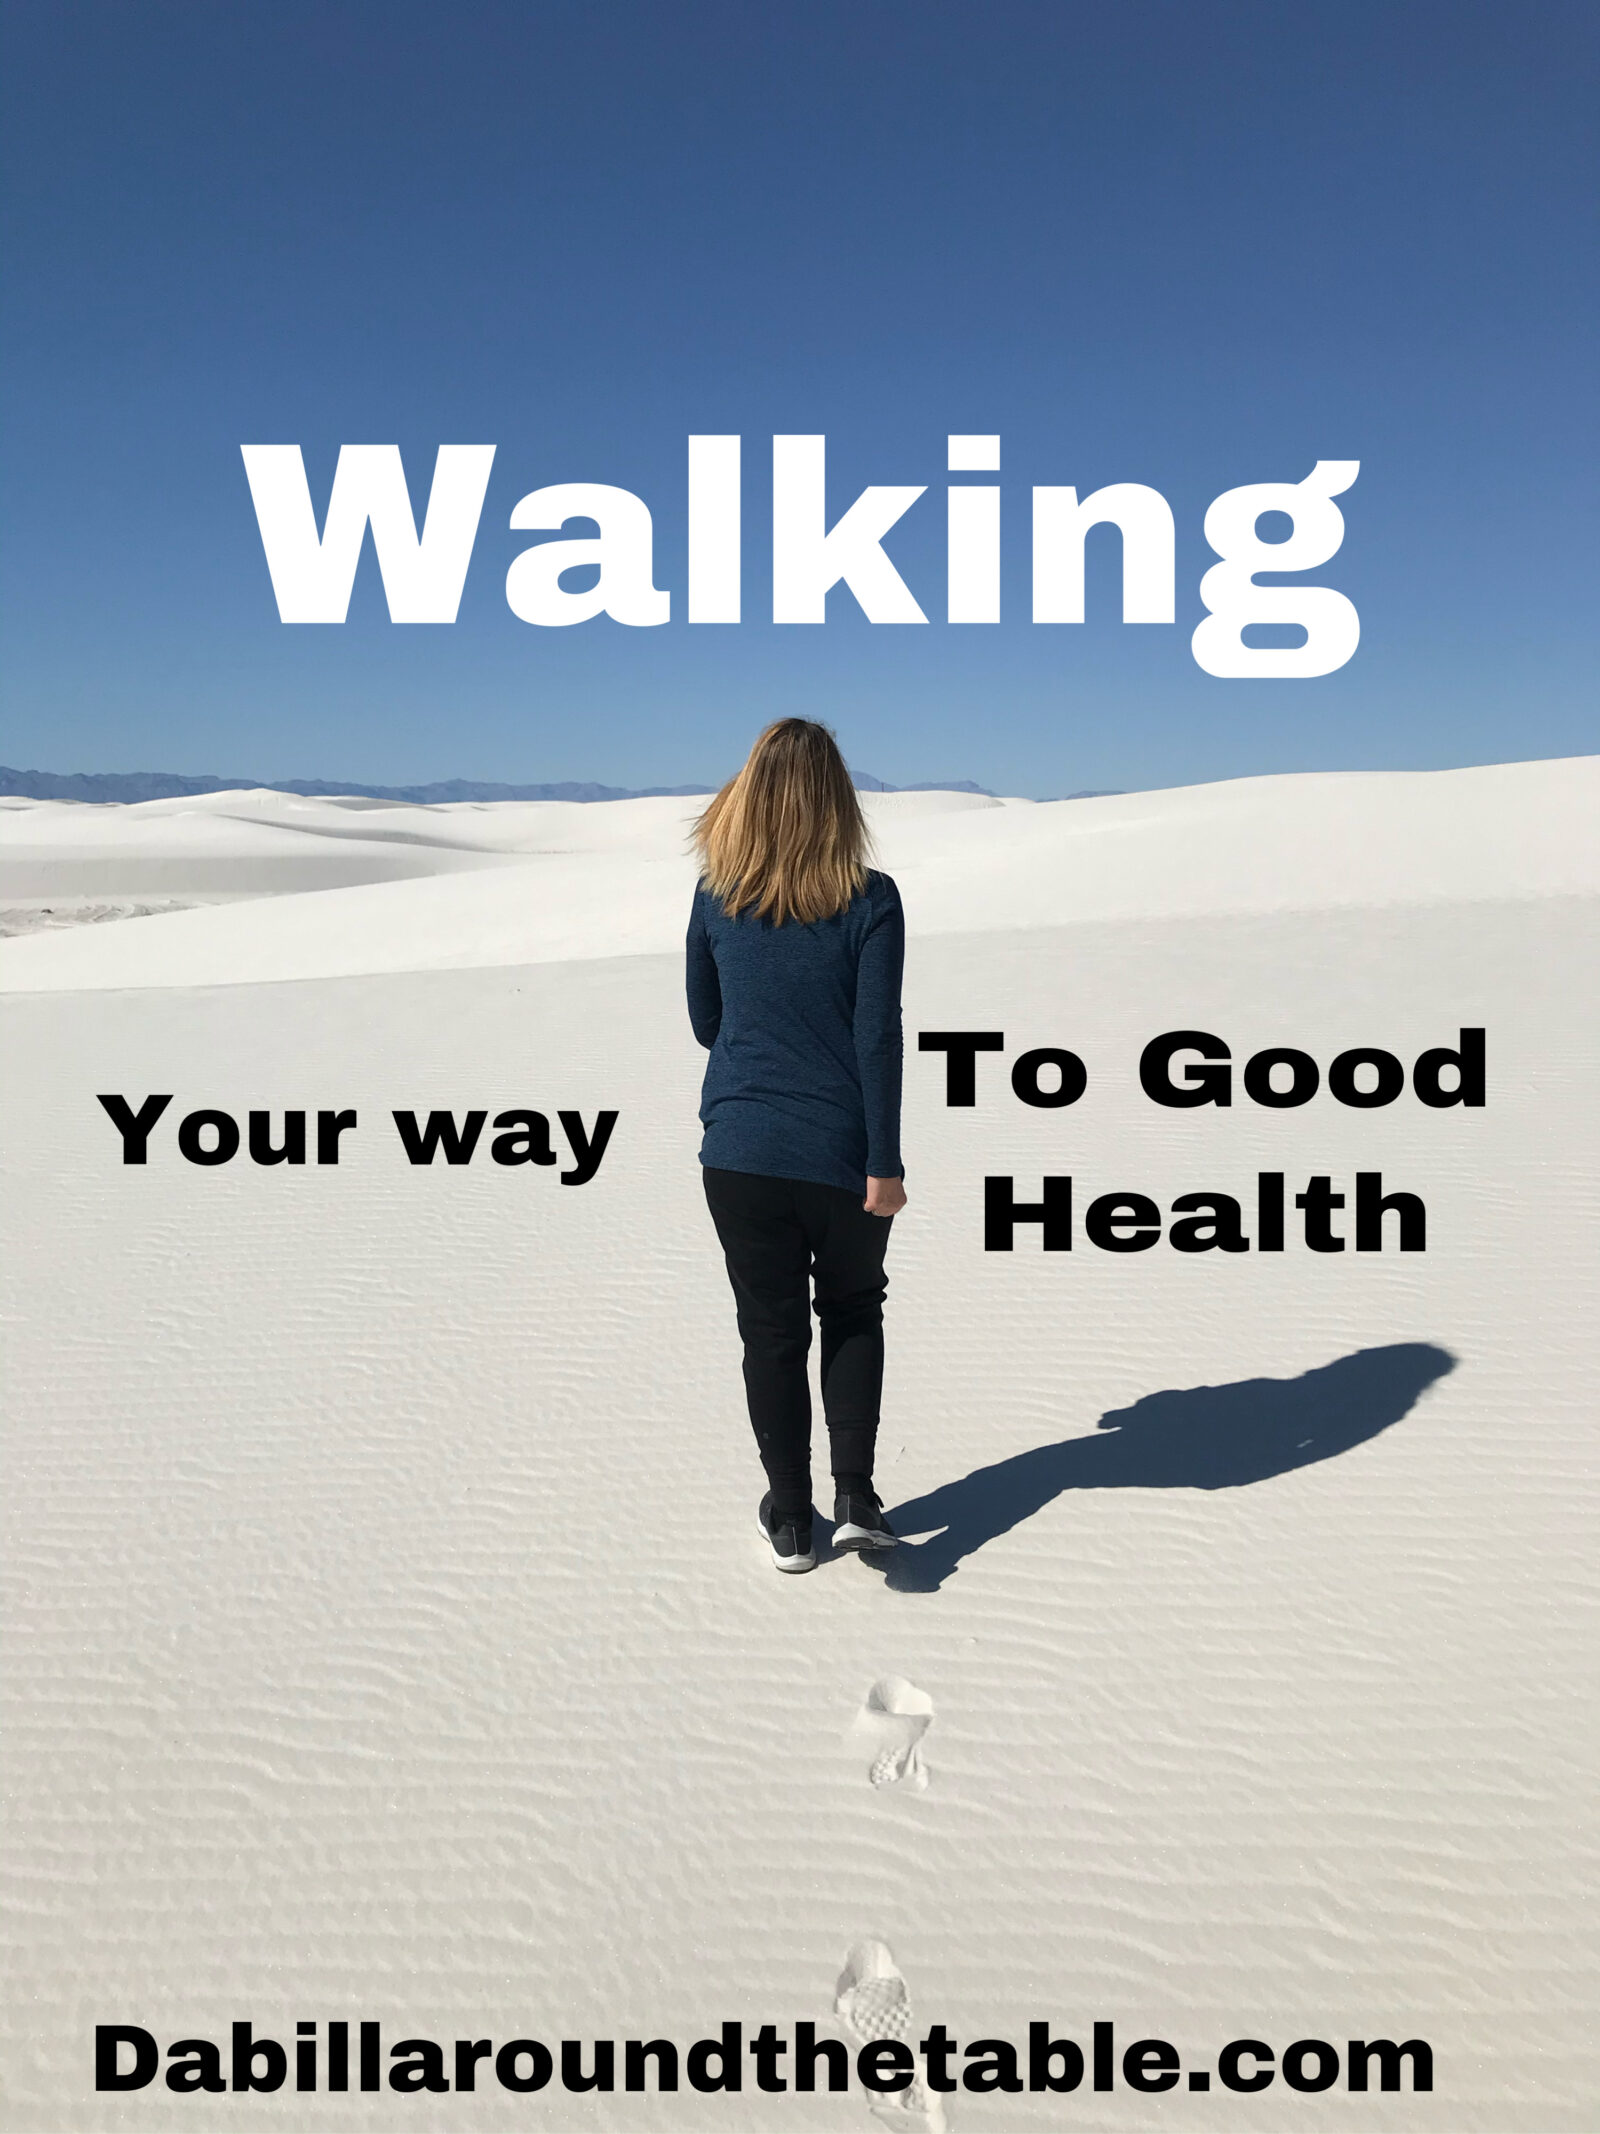 Walking your way to Good Health